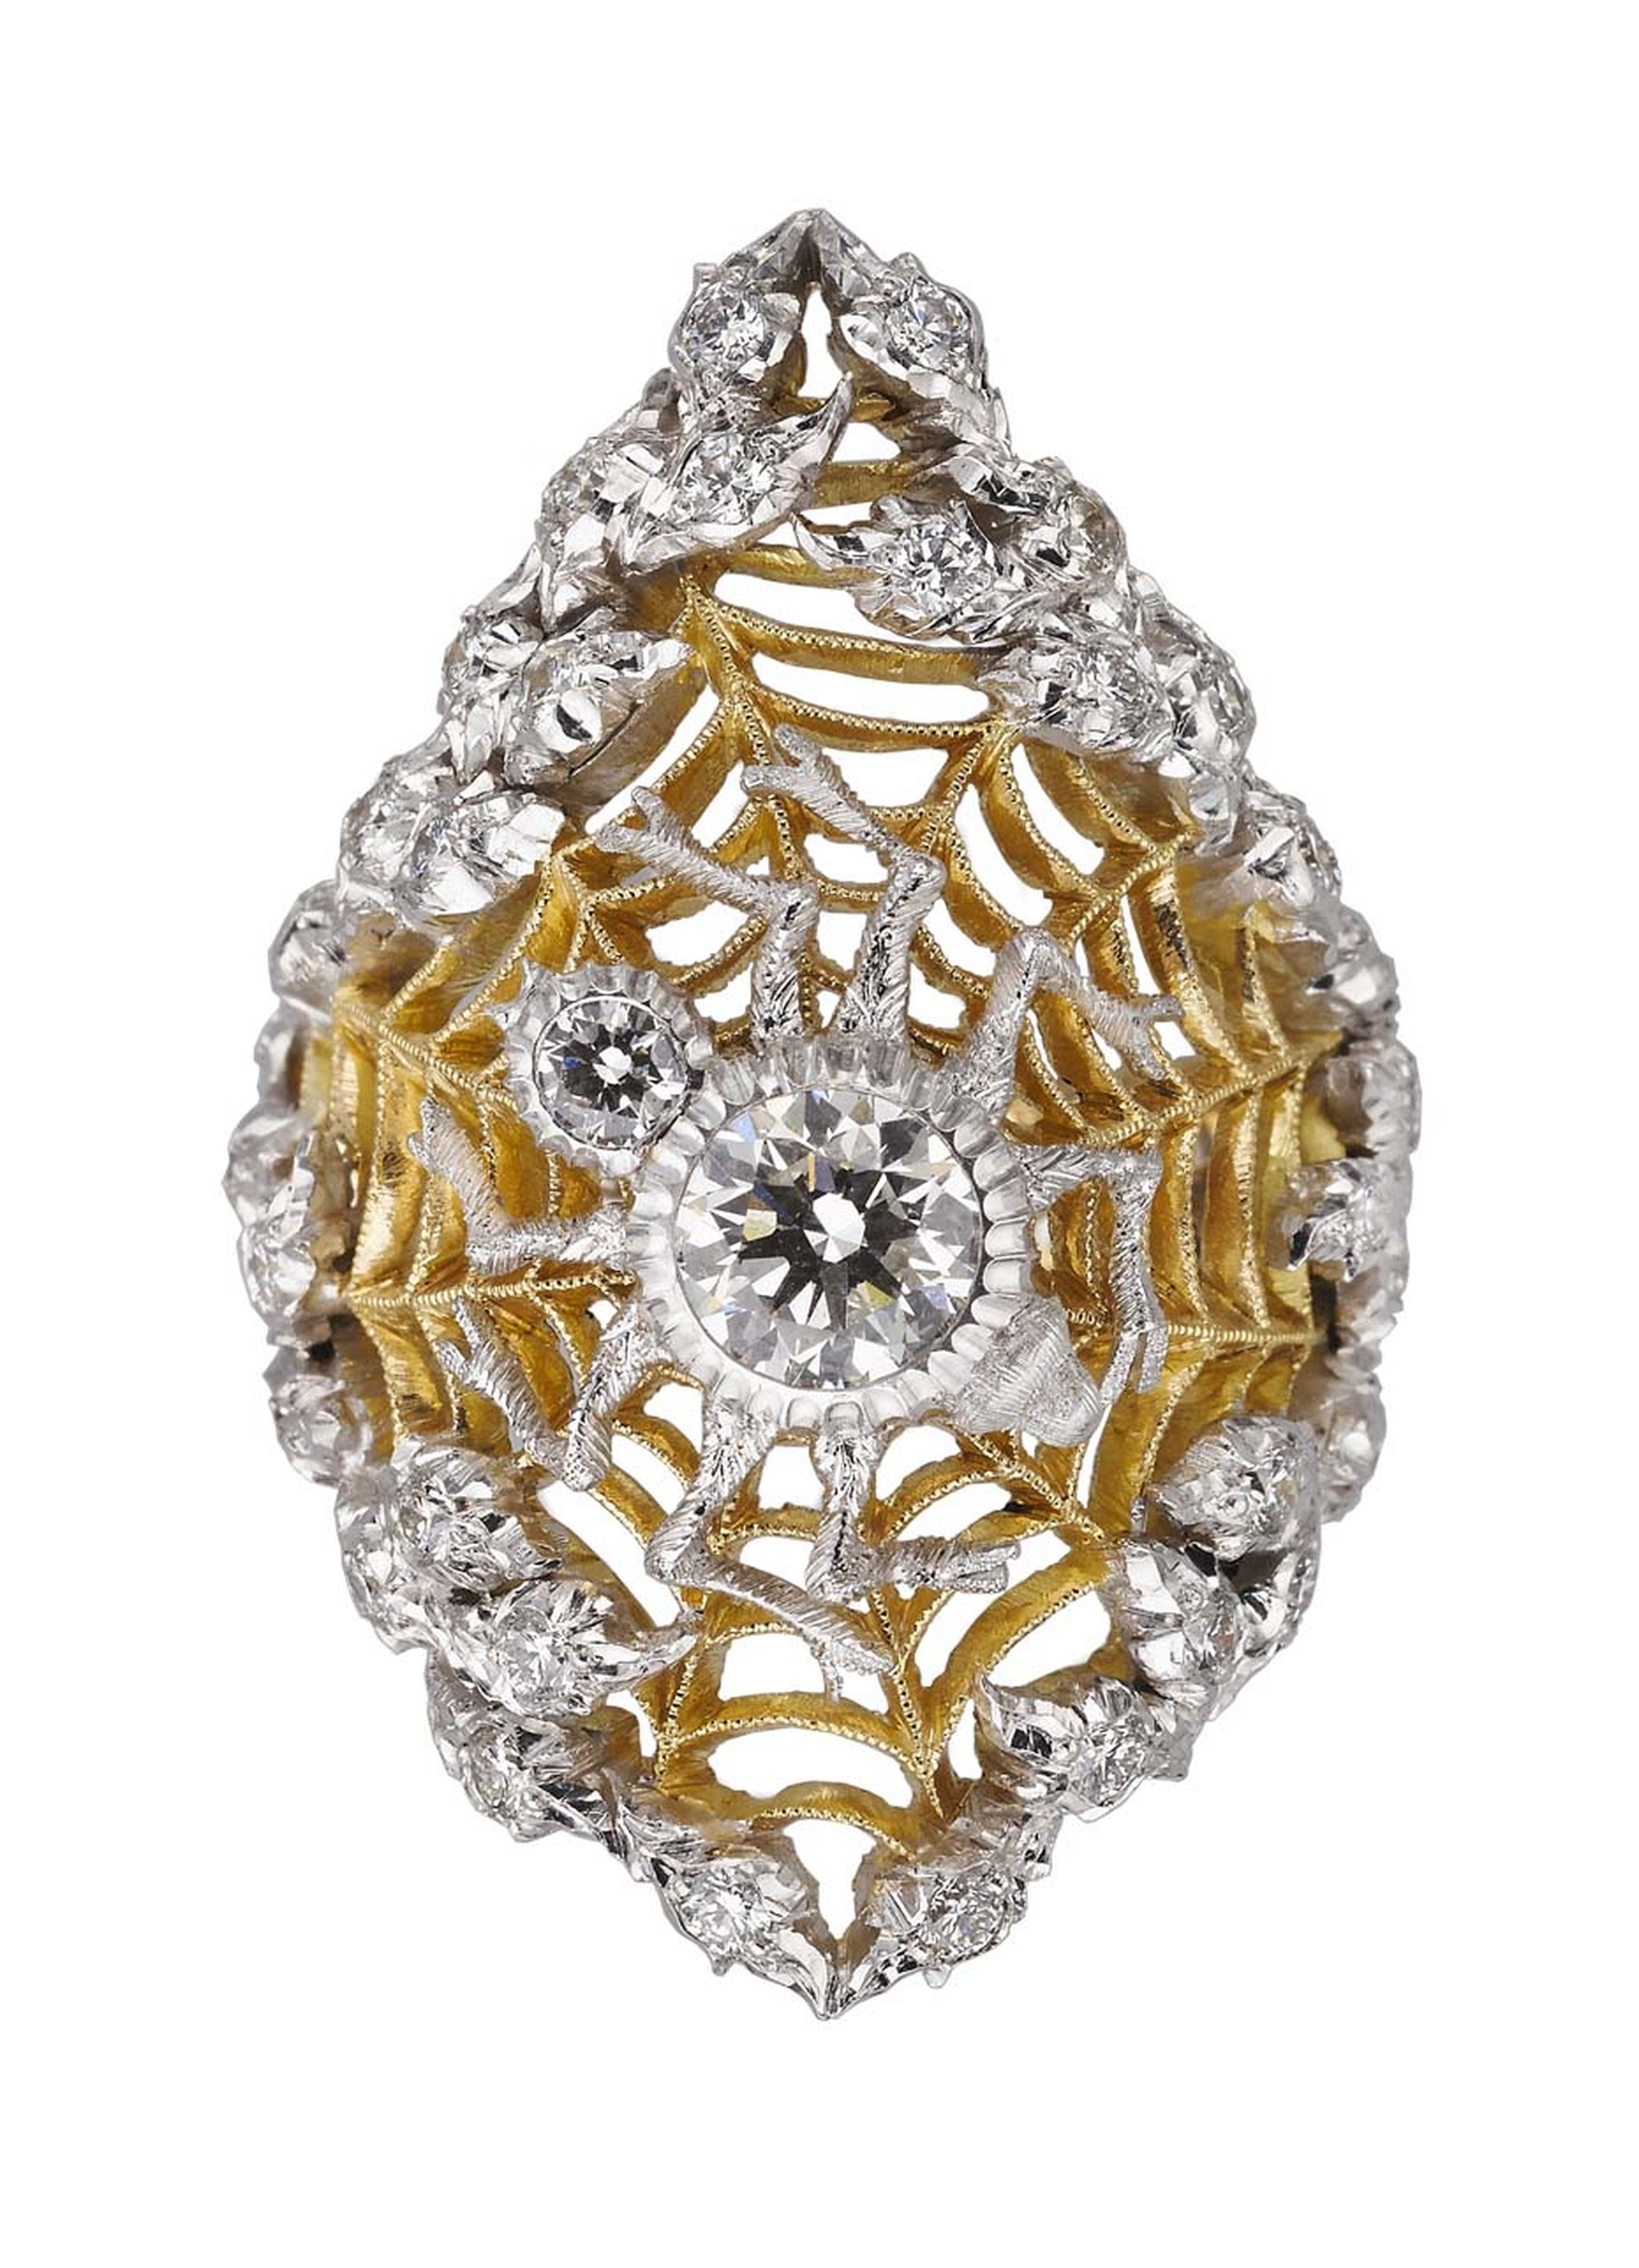 The impressive white gold spider on top of Buccellati's new honeycomb technique ring, with its diamond body and legs, was inspired by Larionov's unique avant-garde painting.